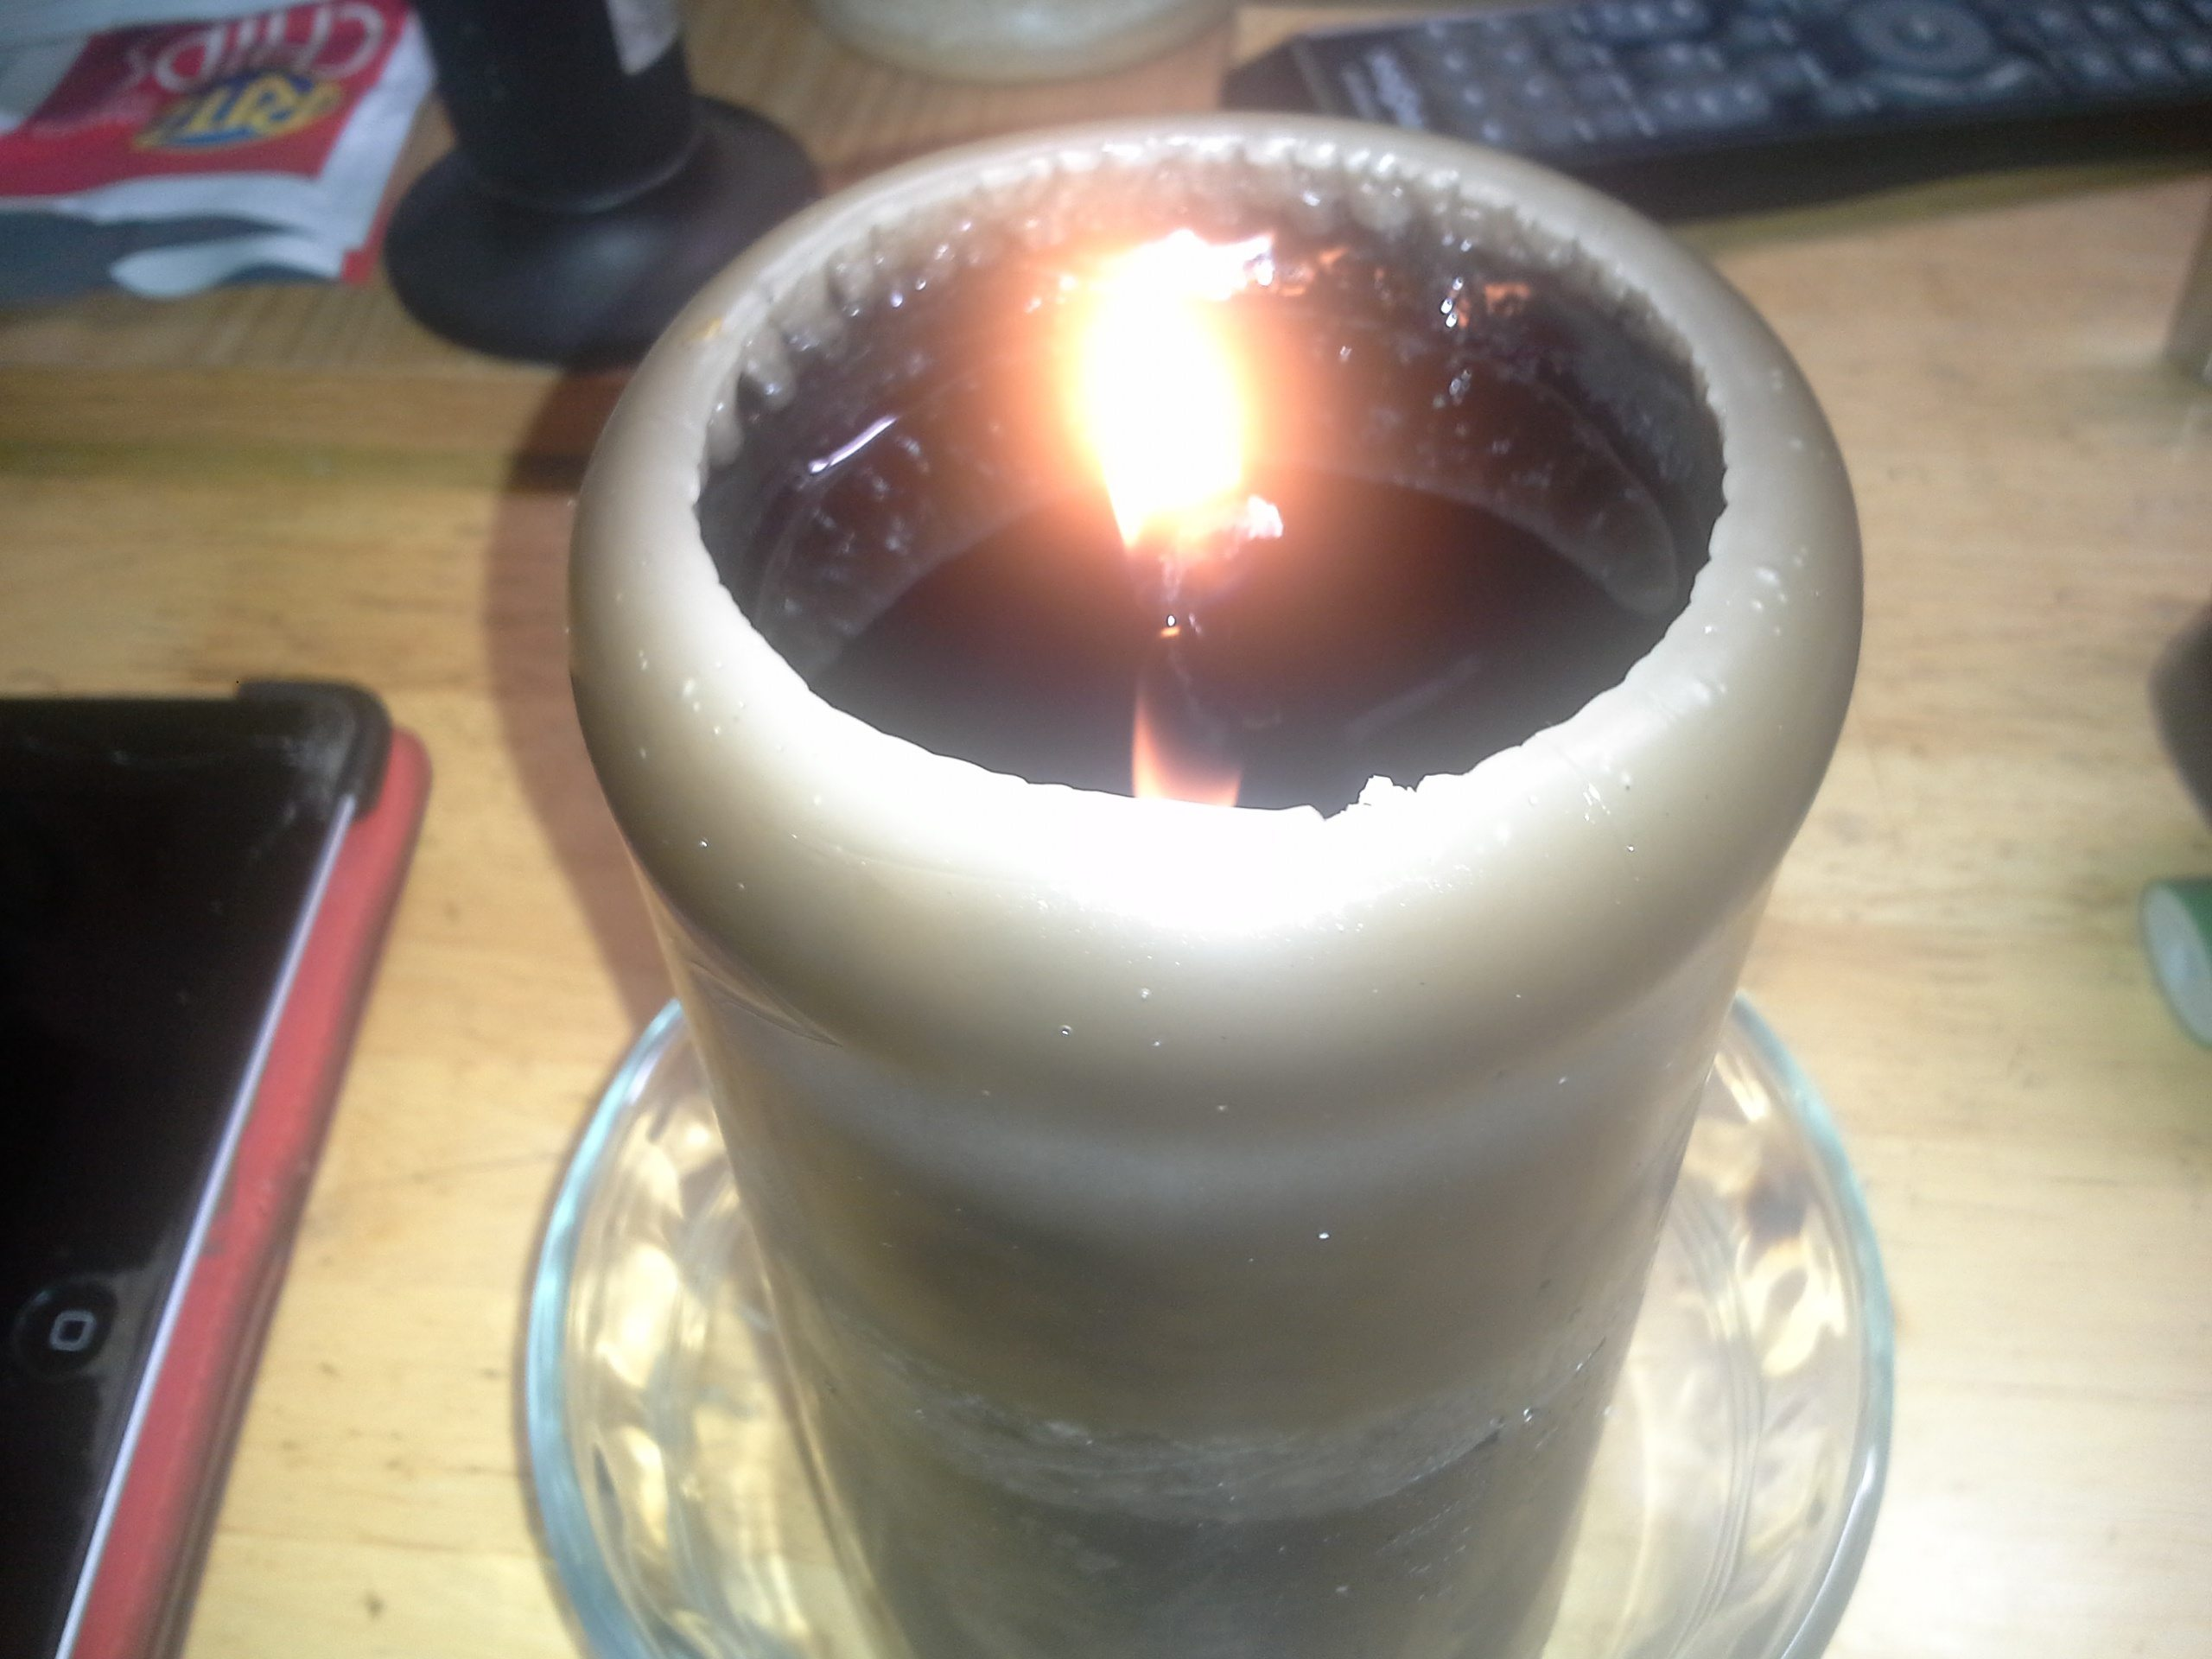 How to make candles that disperse essential oils well - Quora